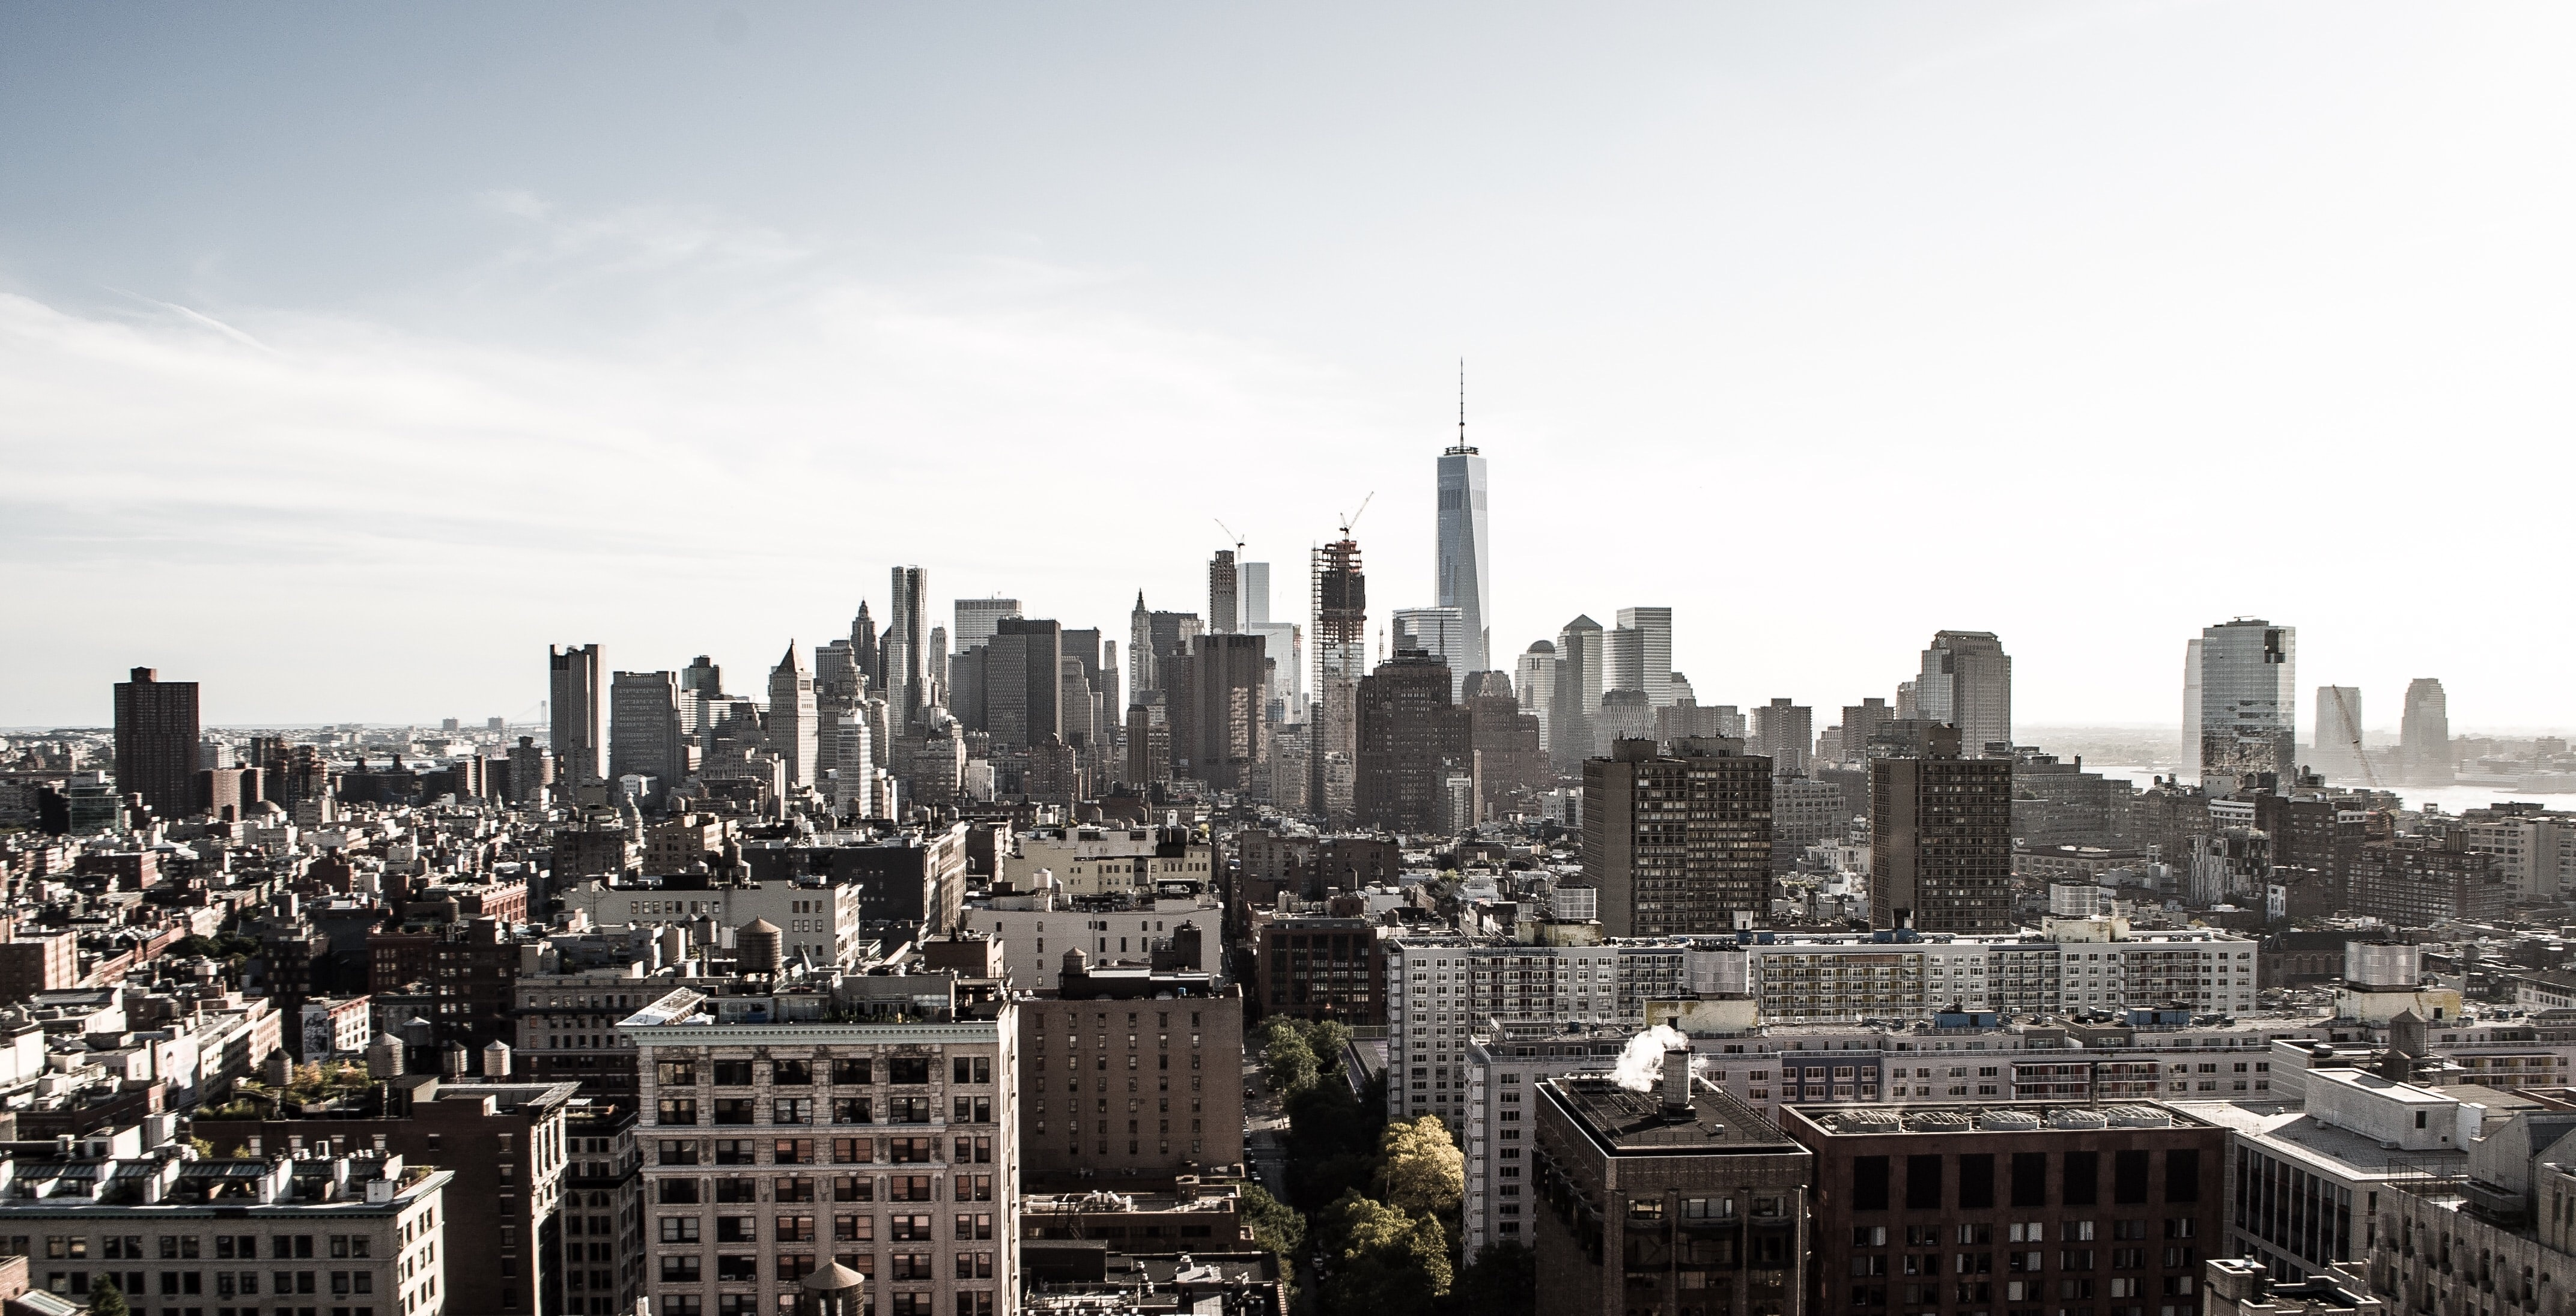 New York City's Financial District skyline from a distance against white cloudy skies